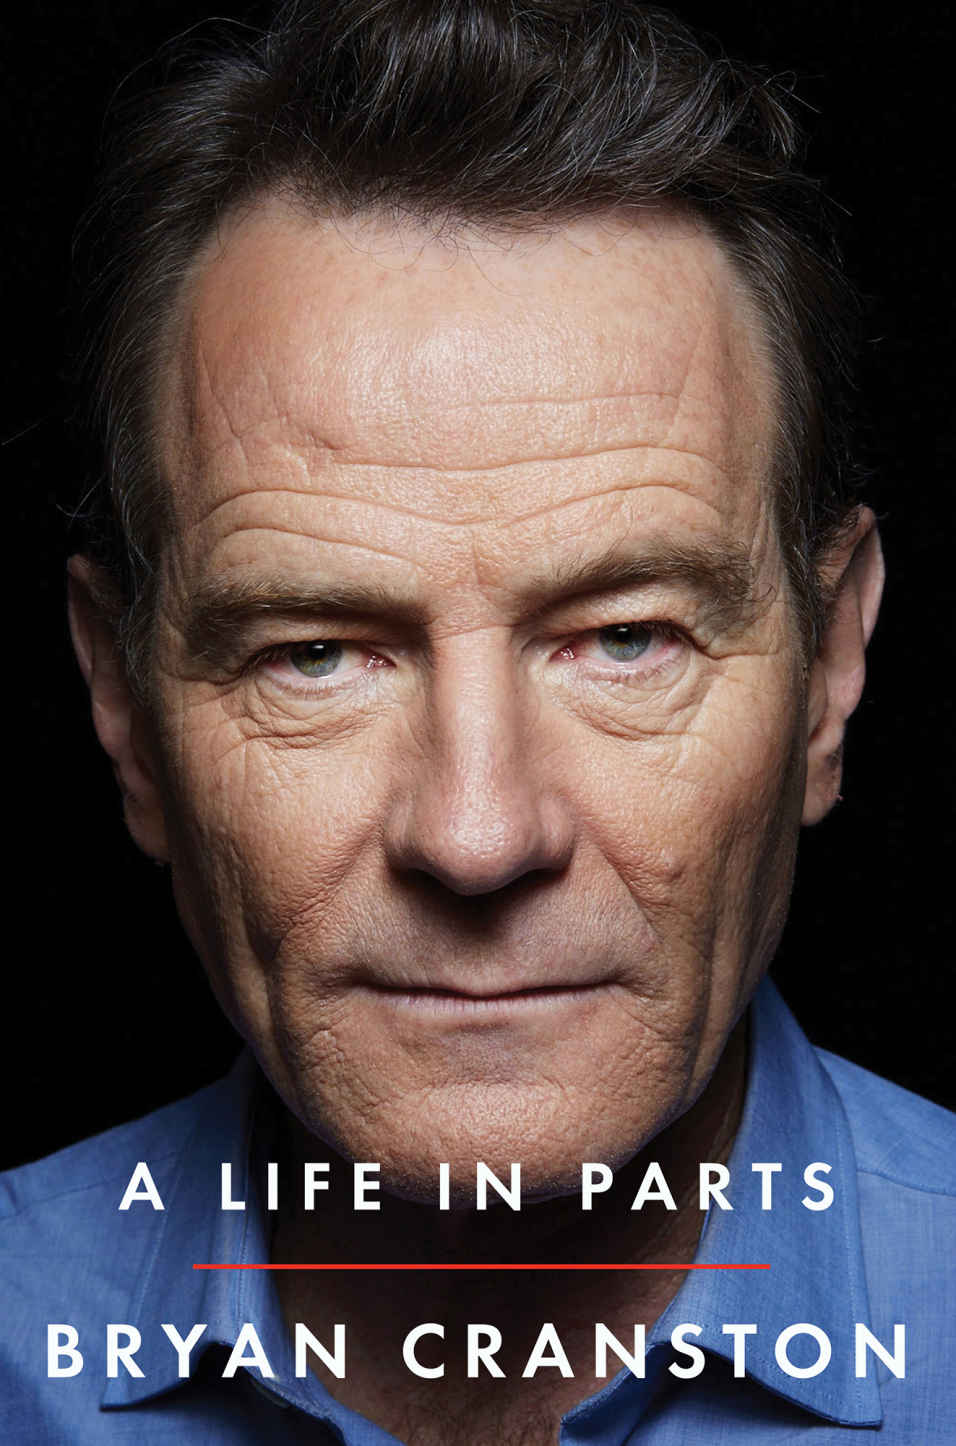 A Life in Parts - Bryan Cranston [kindle] [mobi]